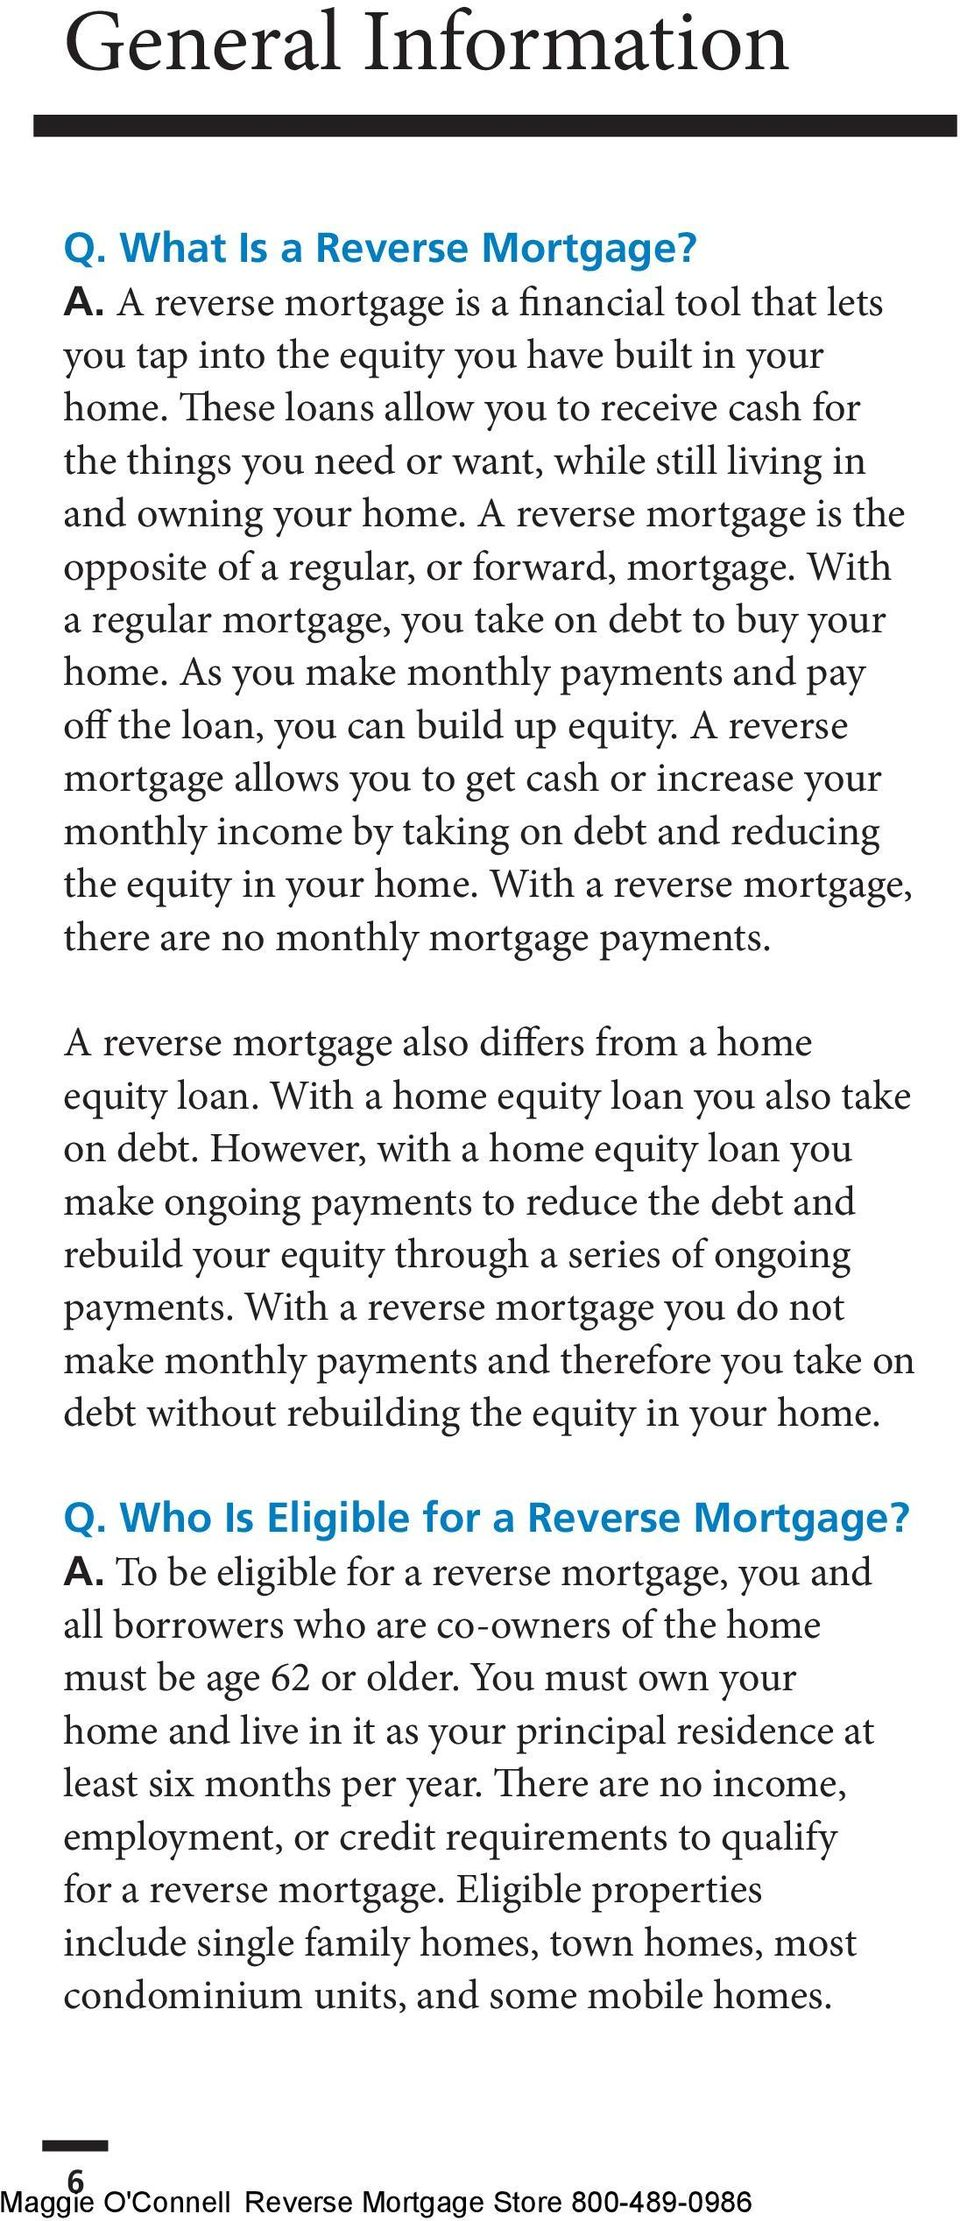 With a regular mortgage, you take on debt to buy your home. As you make monthly payments and pay off the loan, you can build up equity.